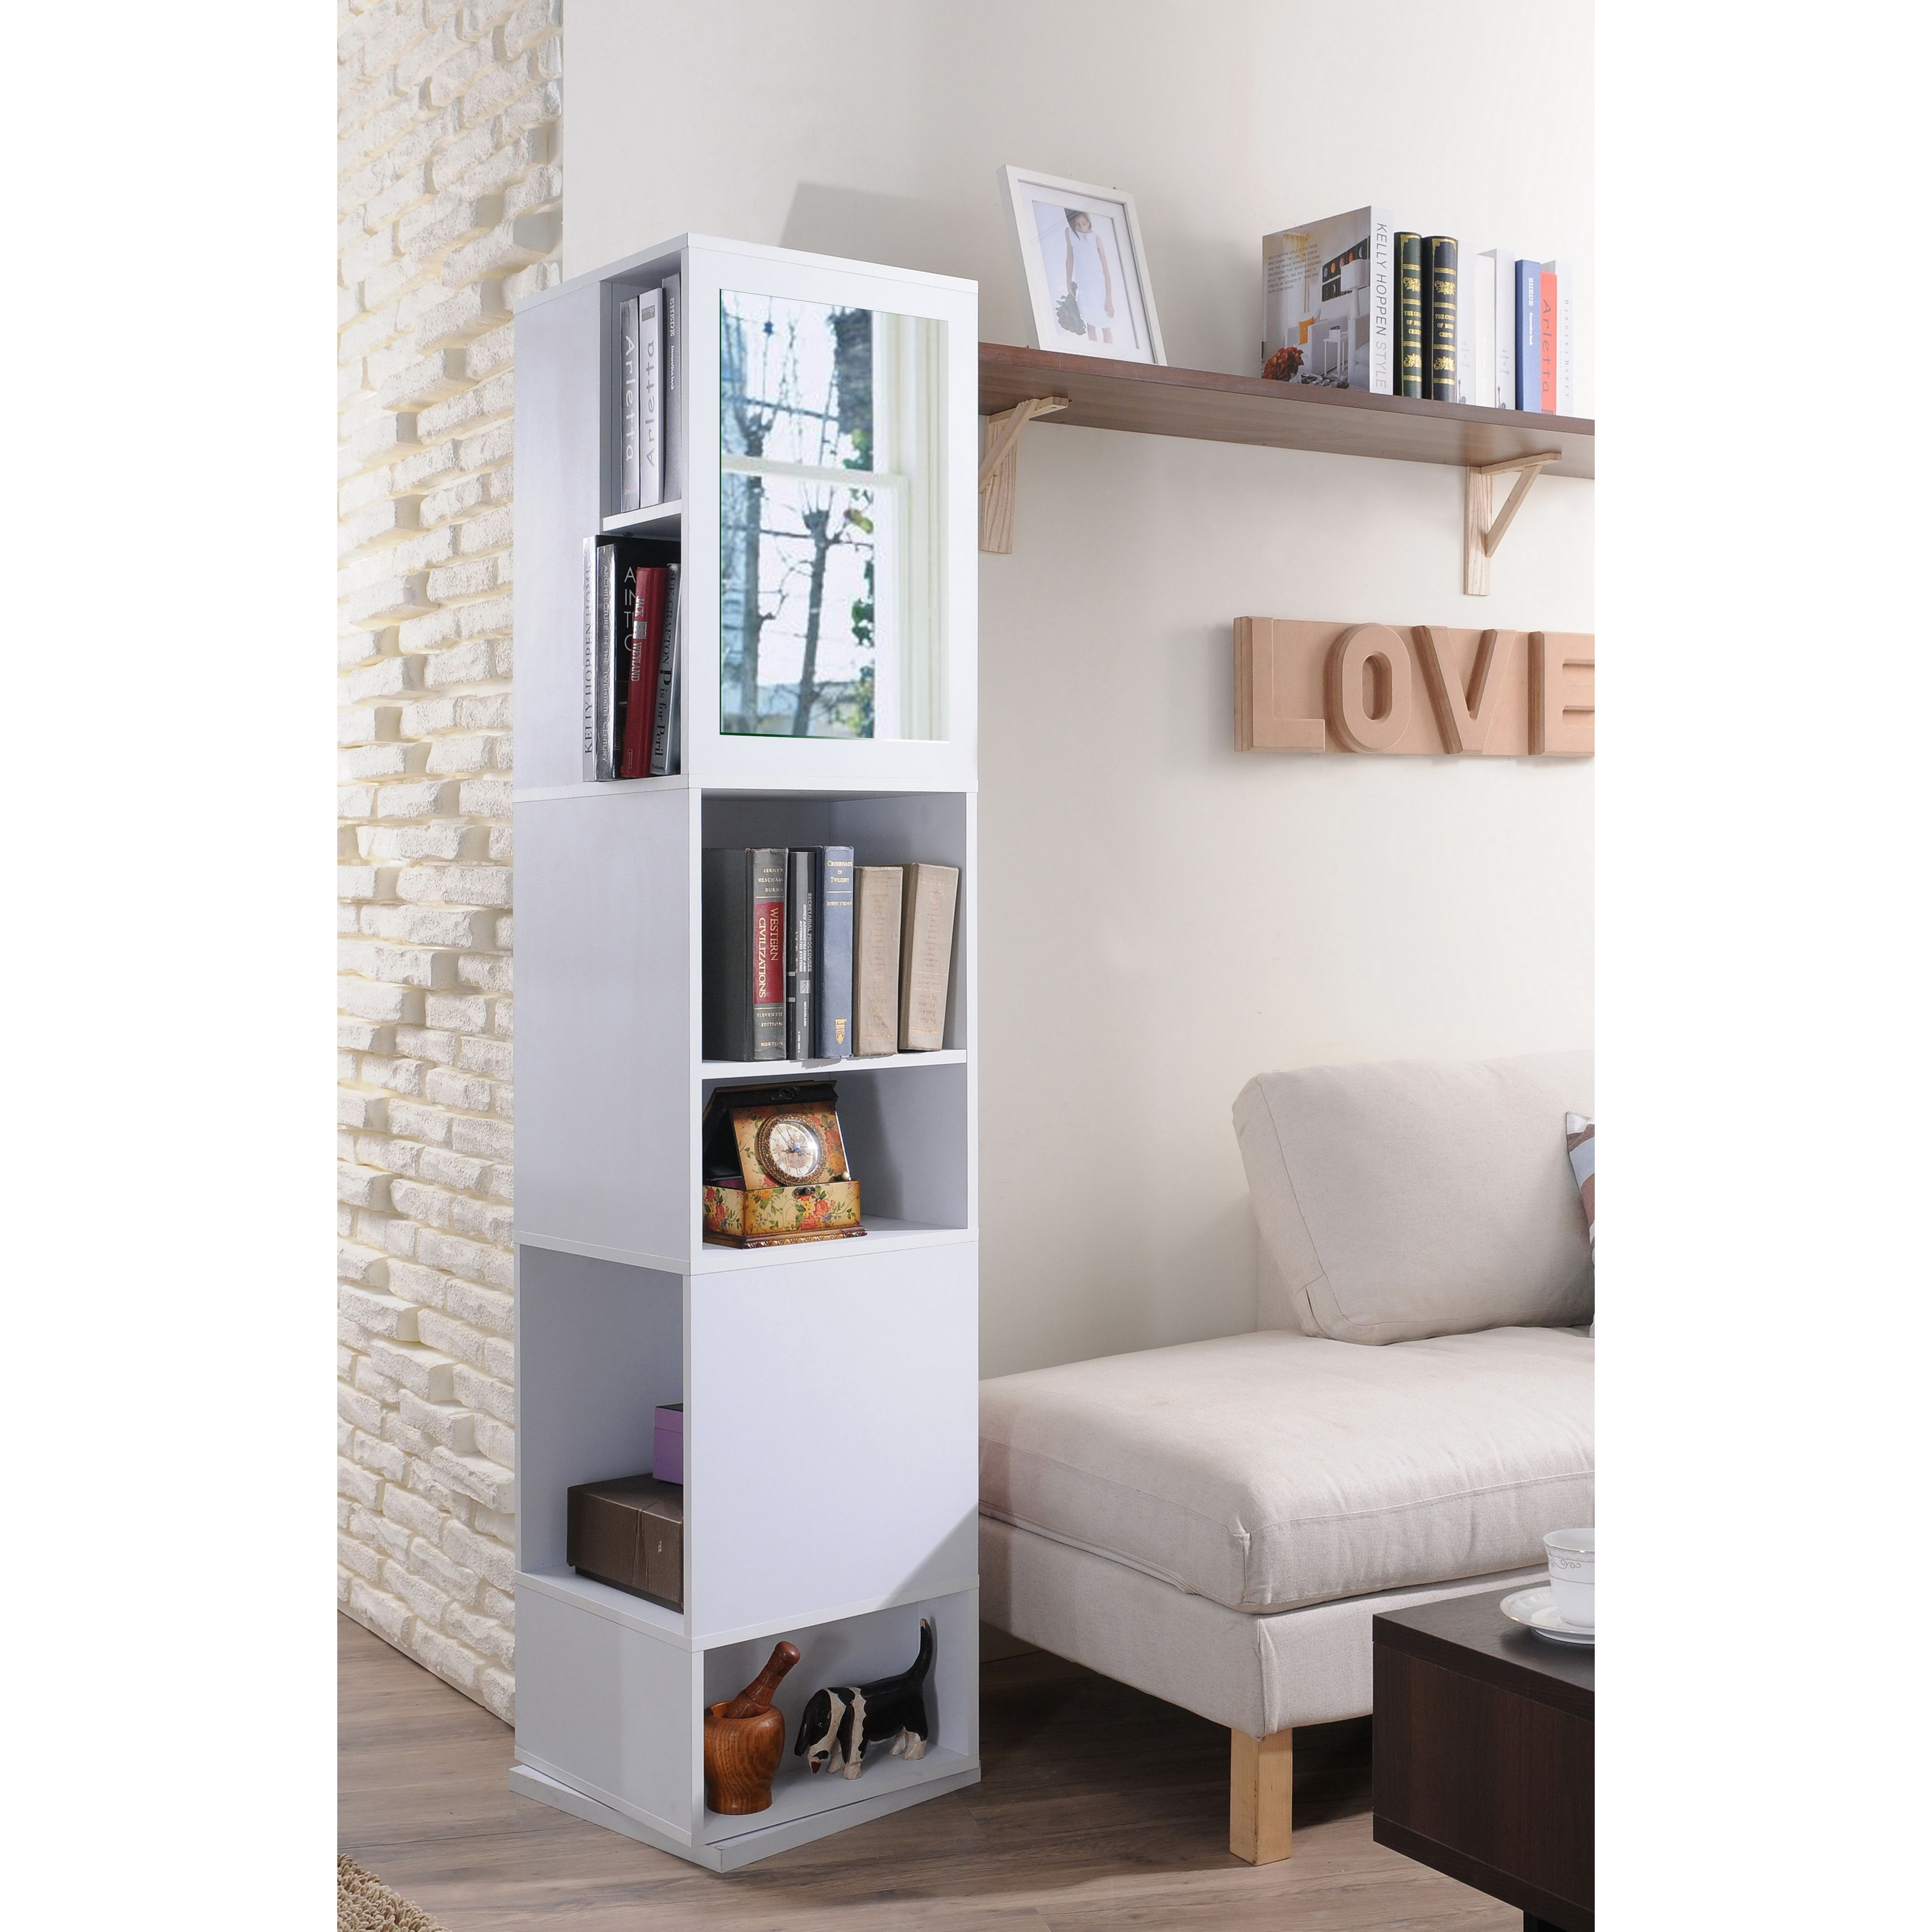 shelves attachment favorite four deep bookcase of the and mirrored has bookcases furniture a swivel storages mirror for showing explore with joshua photos accent